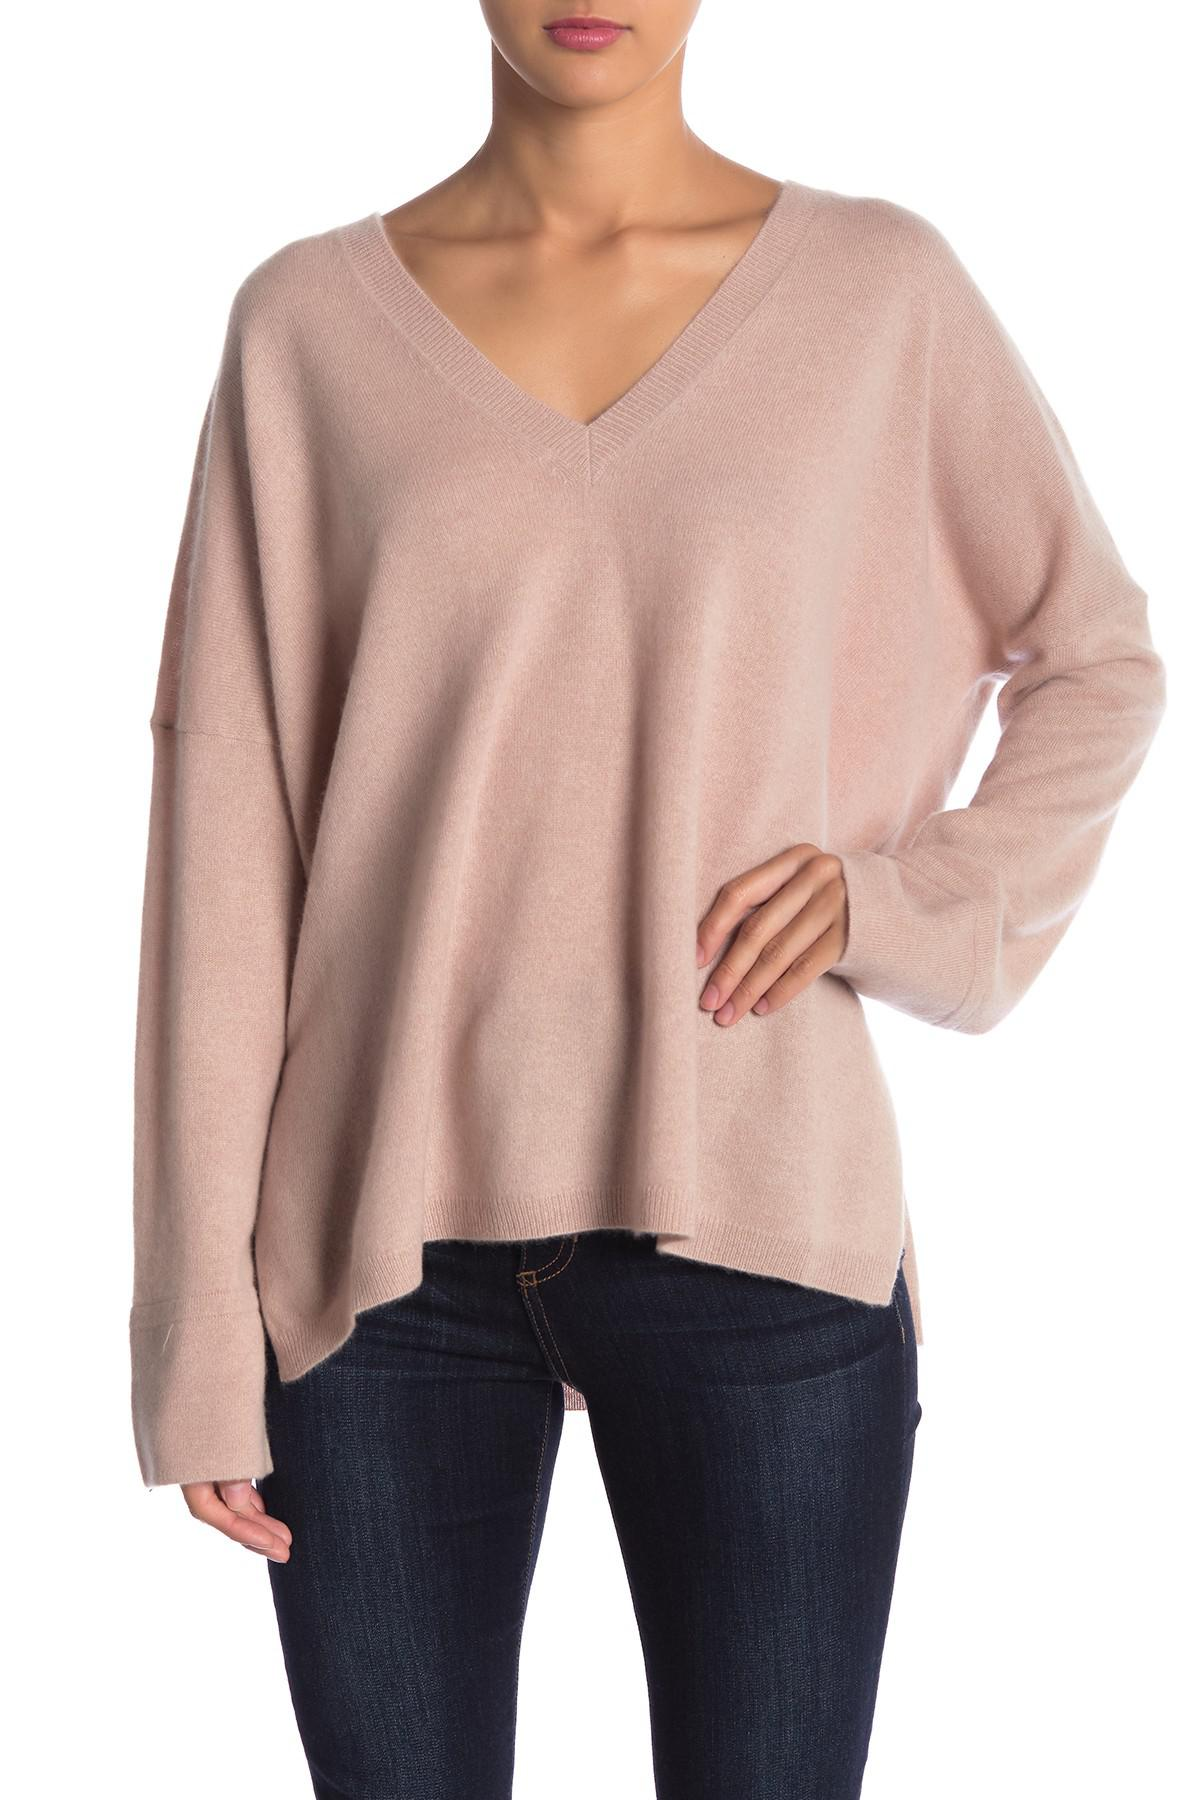 461a2269242 Lyst - 360cashmere Olivia V-neck Cashmere Sweater in Pink